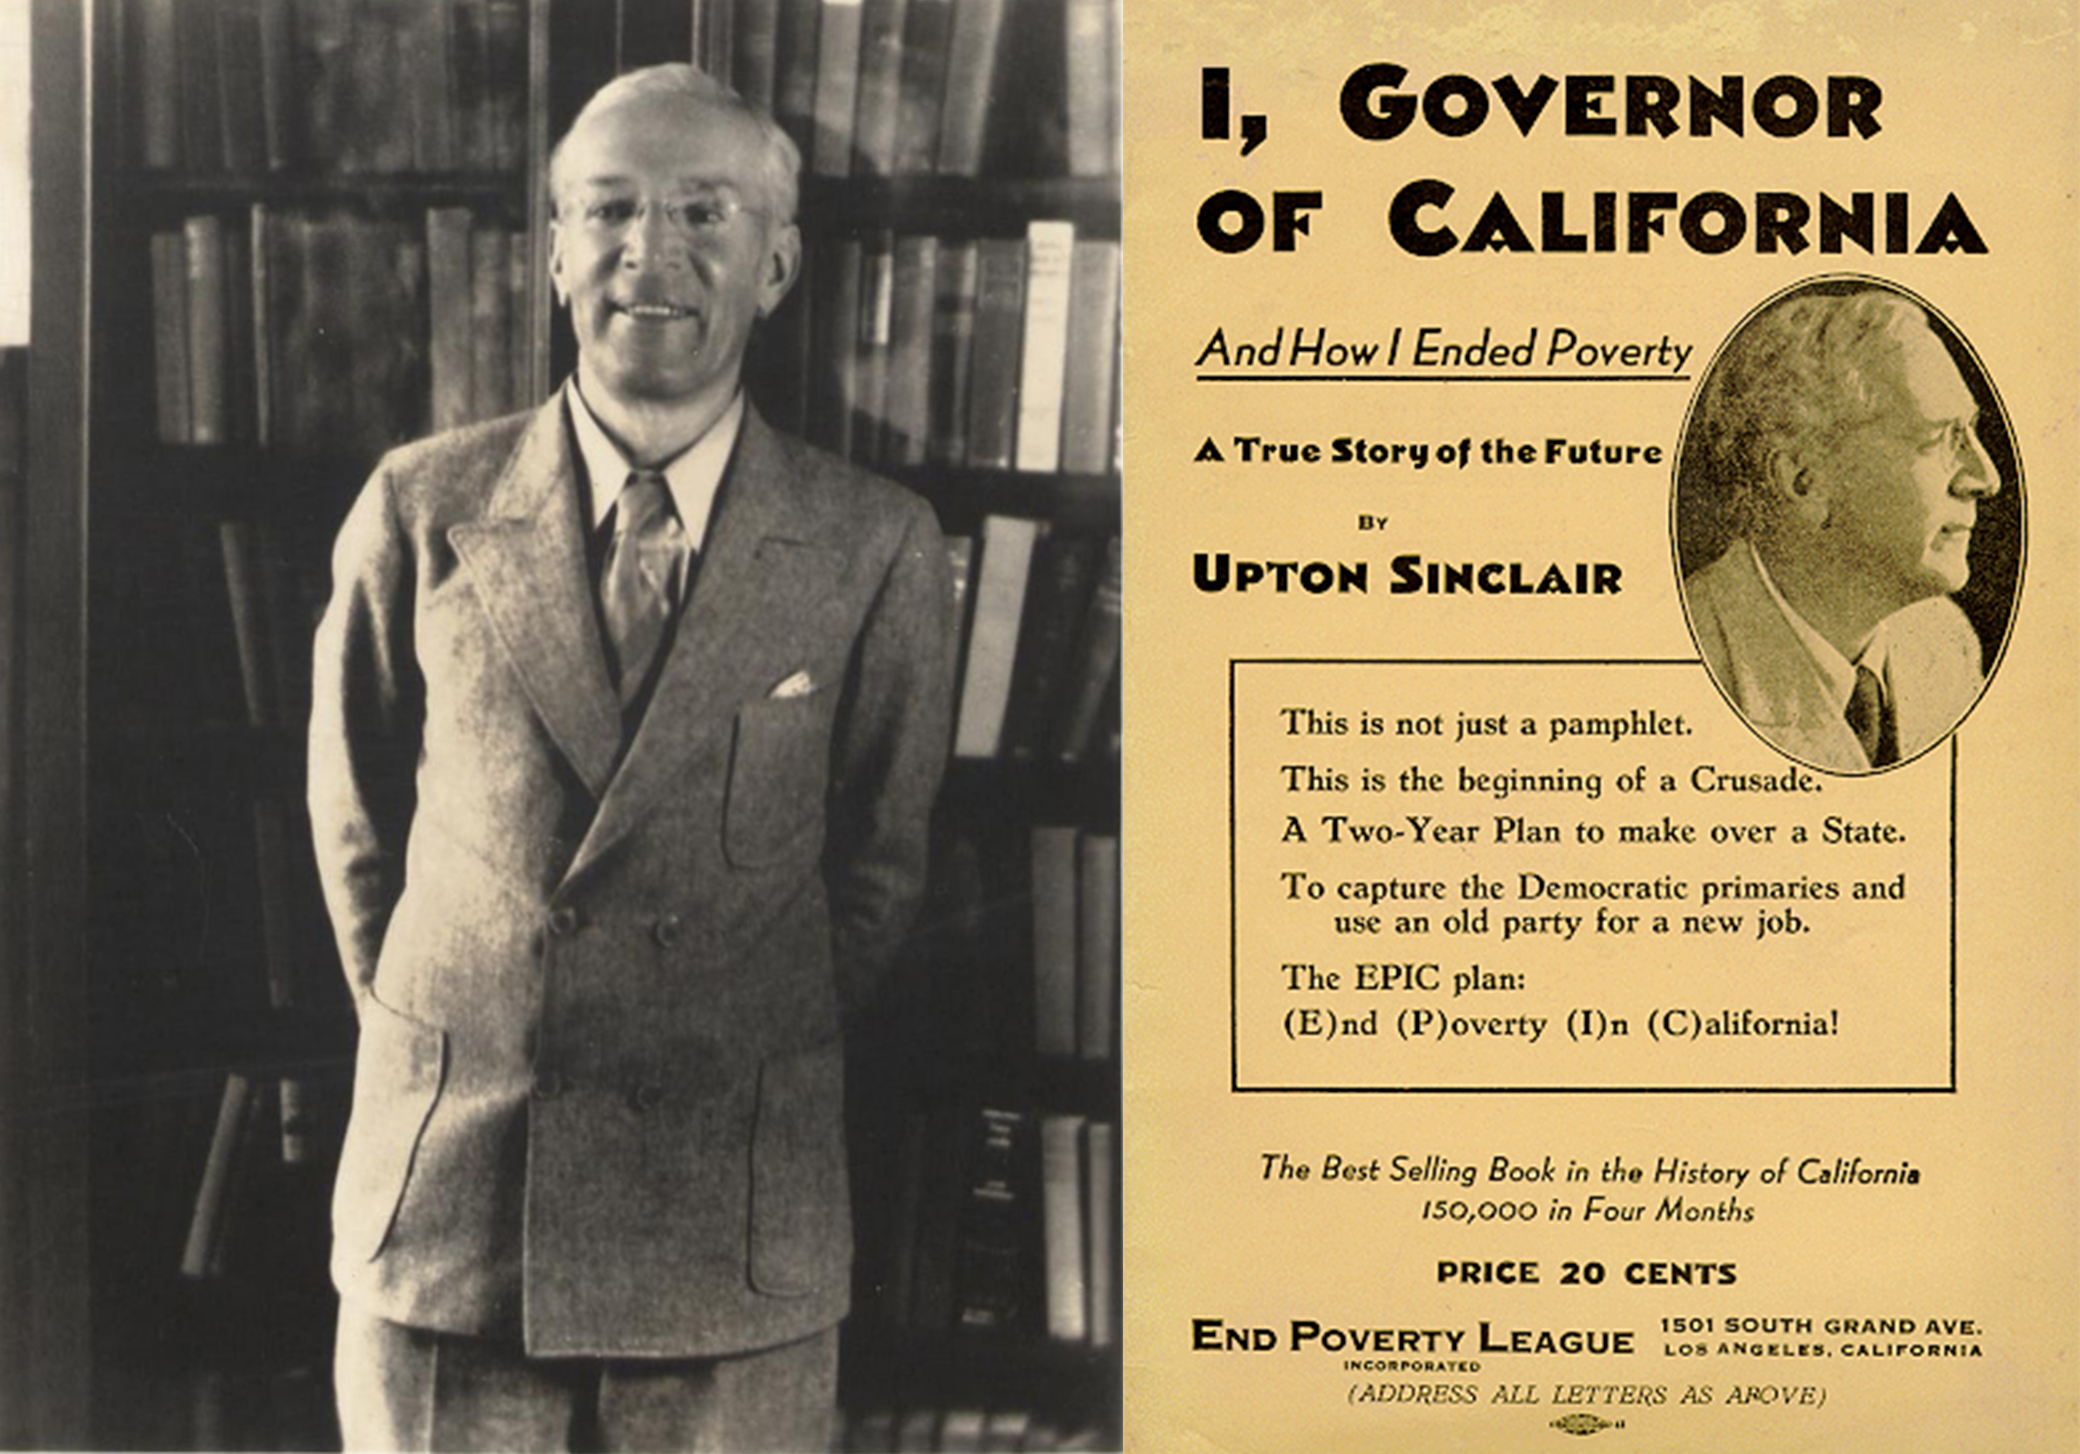 (L) Upton Sinclair, c. 1930s. Smithsonian Institution, Archives of American Art, Hugo Gellert Papers. (R) Cover of I, Governor of California—And How I Ended Poverty (1934) by Upton Sinclair.